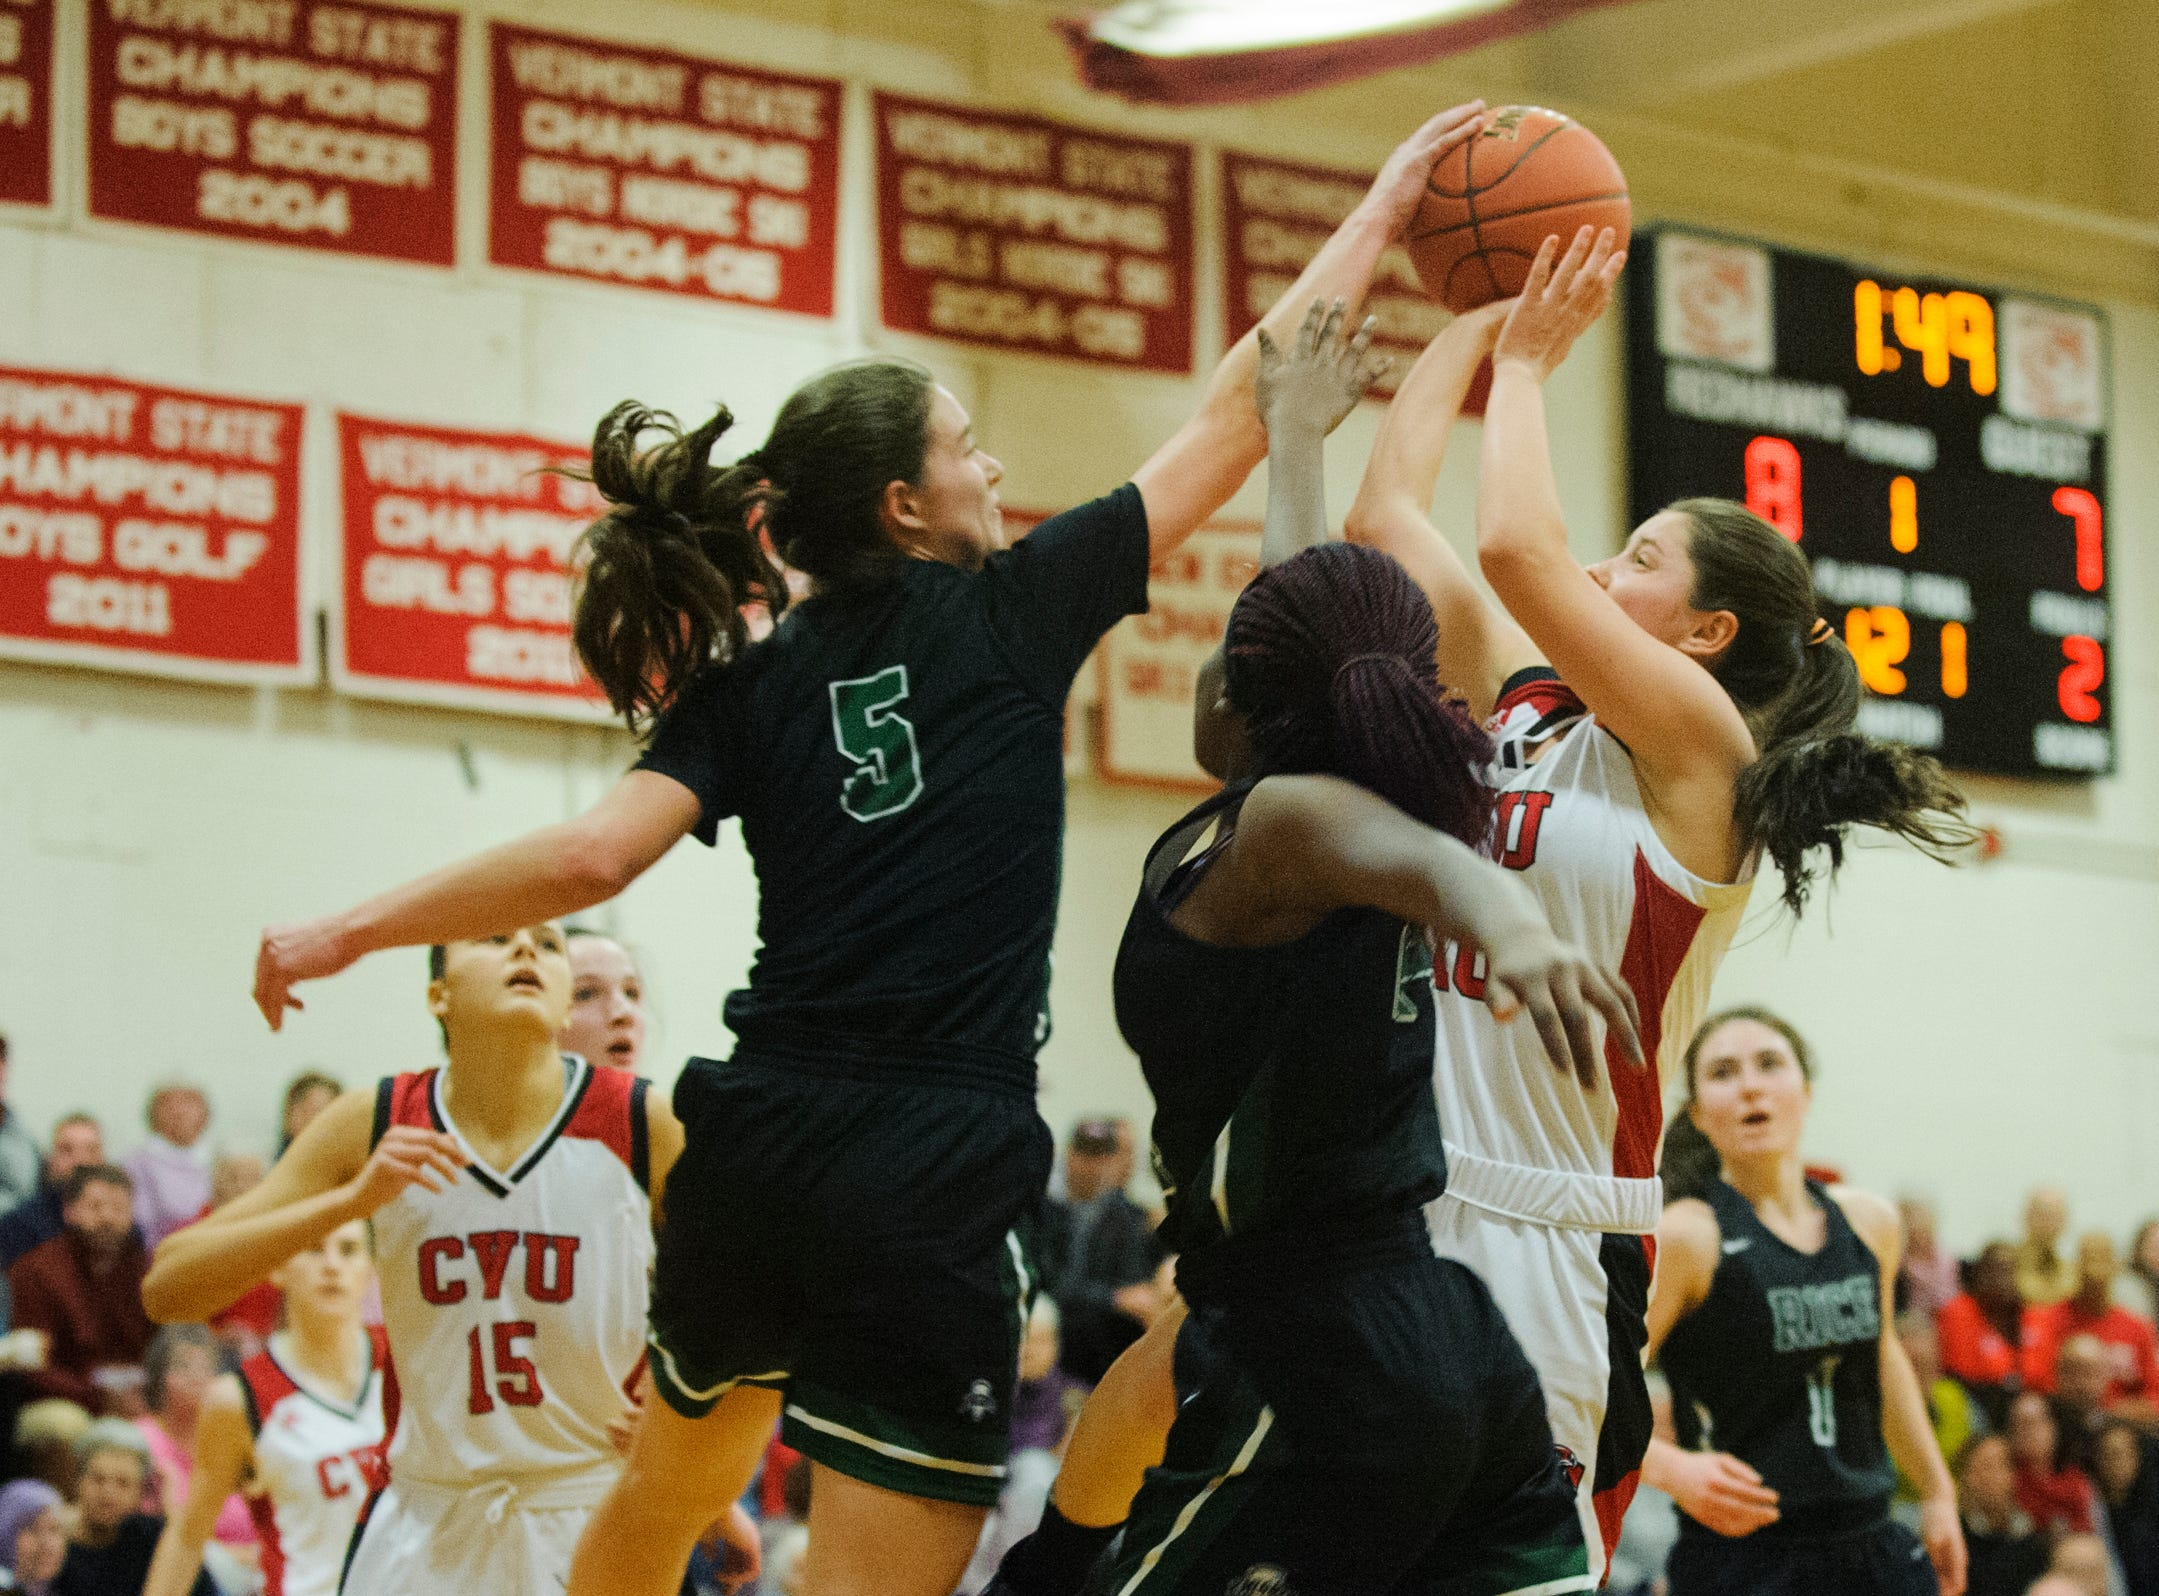 Rice's Petra Langan (5) blocks the shot by CVU's Quinn Boardman (10) during high school girls basketball game between the Rice Green Knights and the Champlain Valley Union Redhawks at CVU High School on Friday night January 11, 2019 in Hinesburg.